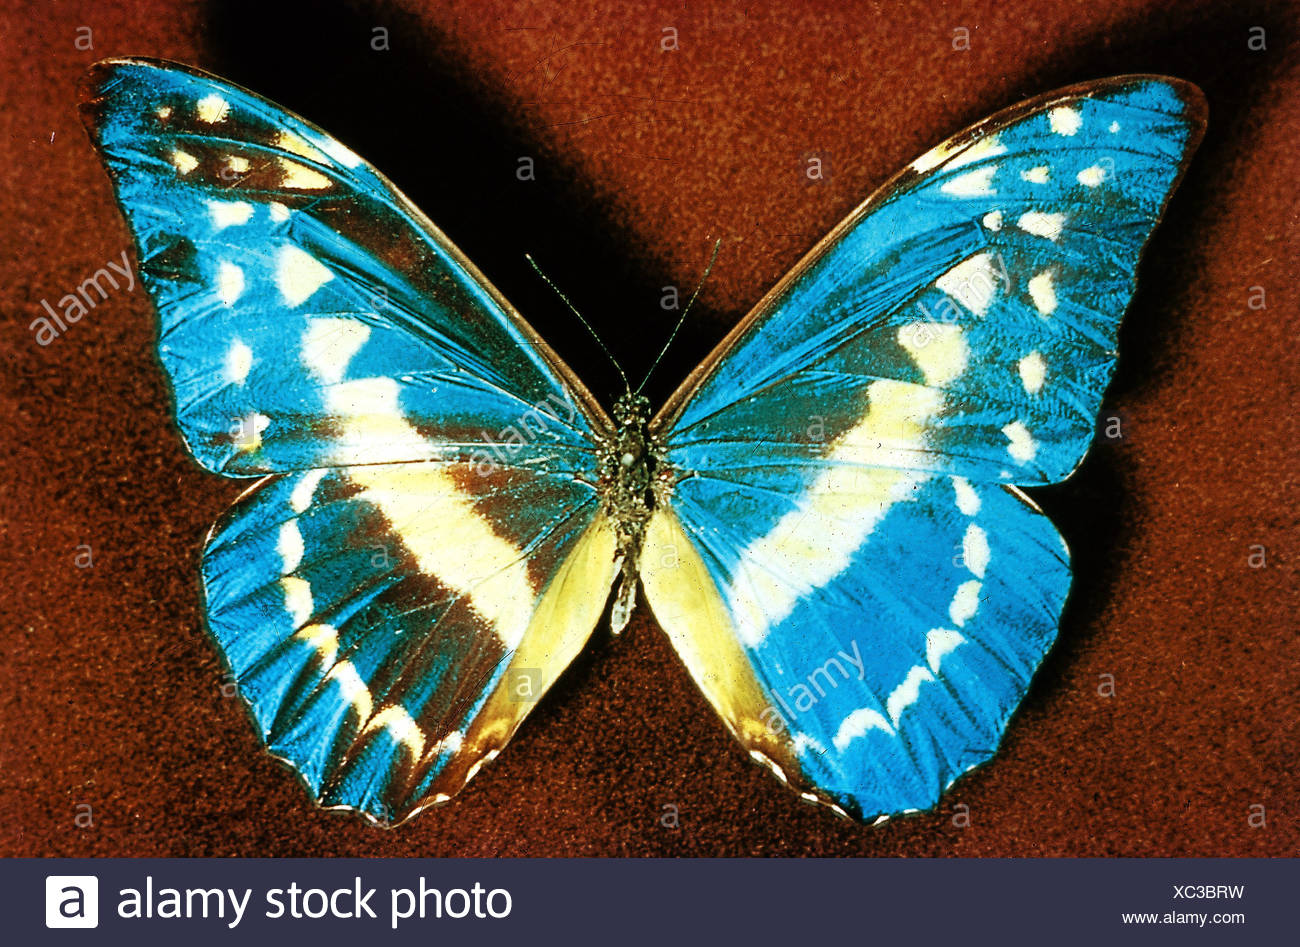 zoology / animals, insect, butterflies, Blue Morpho, (Morpho helena), distribution: Peru, butterfly, Lepidoptera, tropical, moth - Stock Image